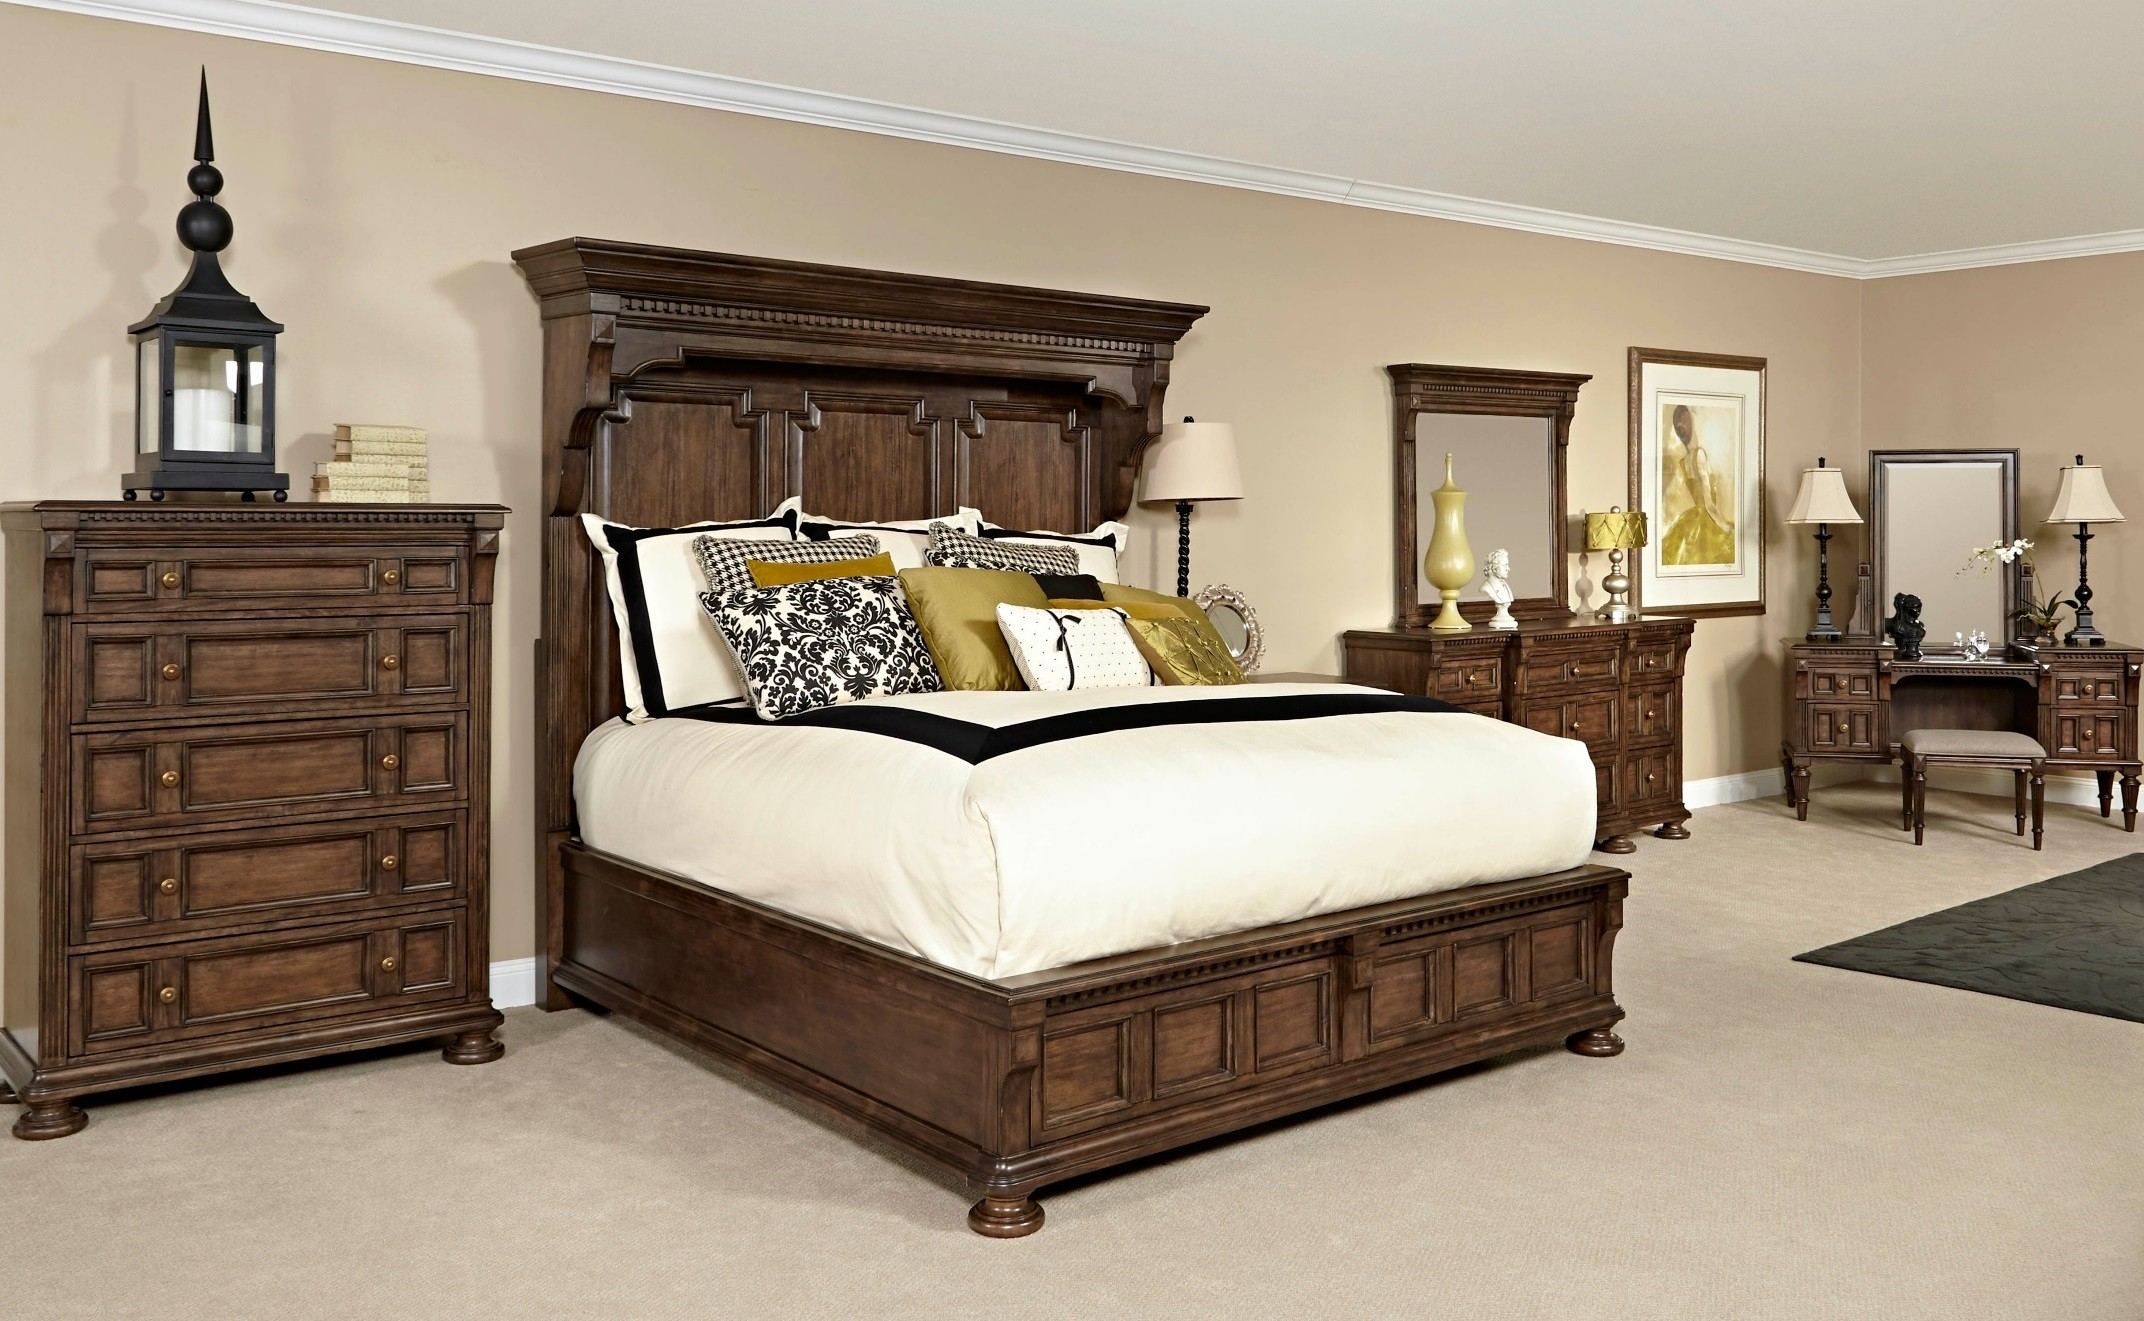 Broyhill bedroom furniture quality home furniture 23 for for Broyhill bedroom furniture